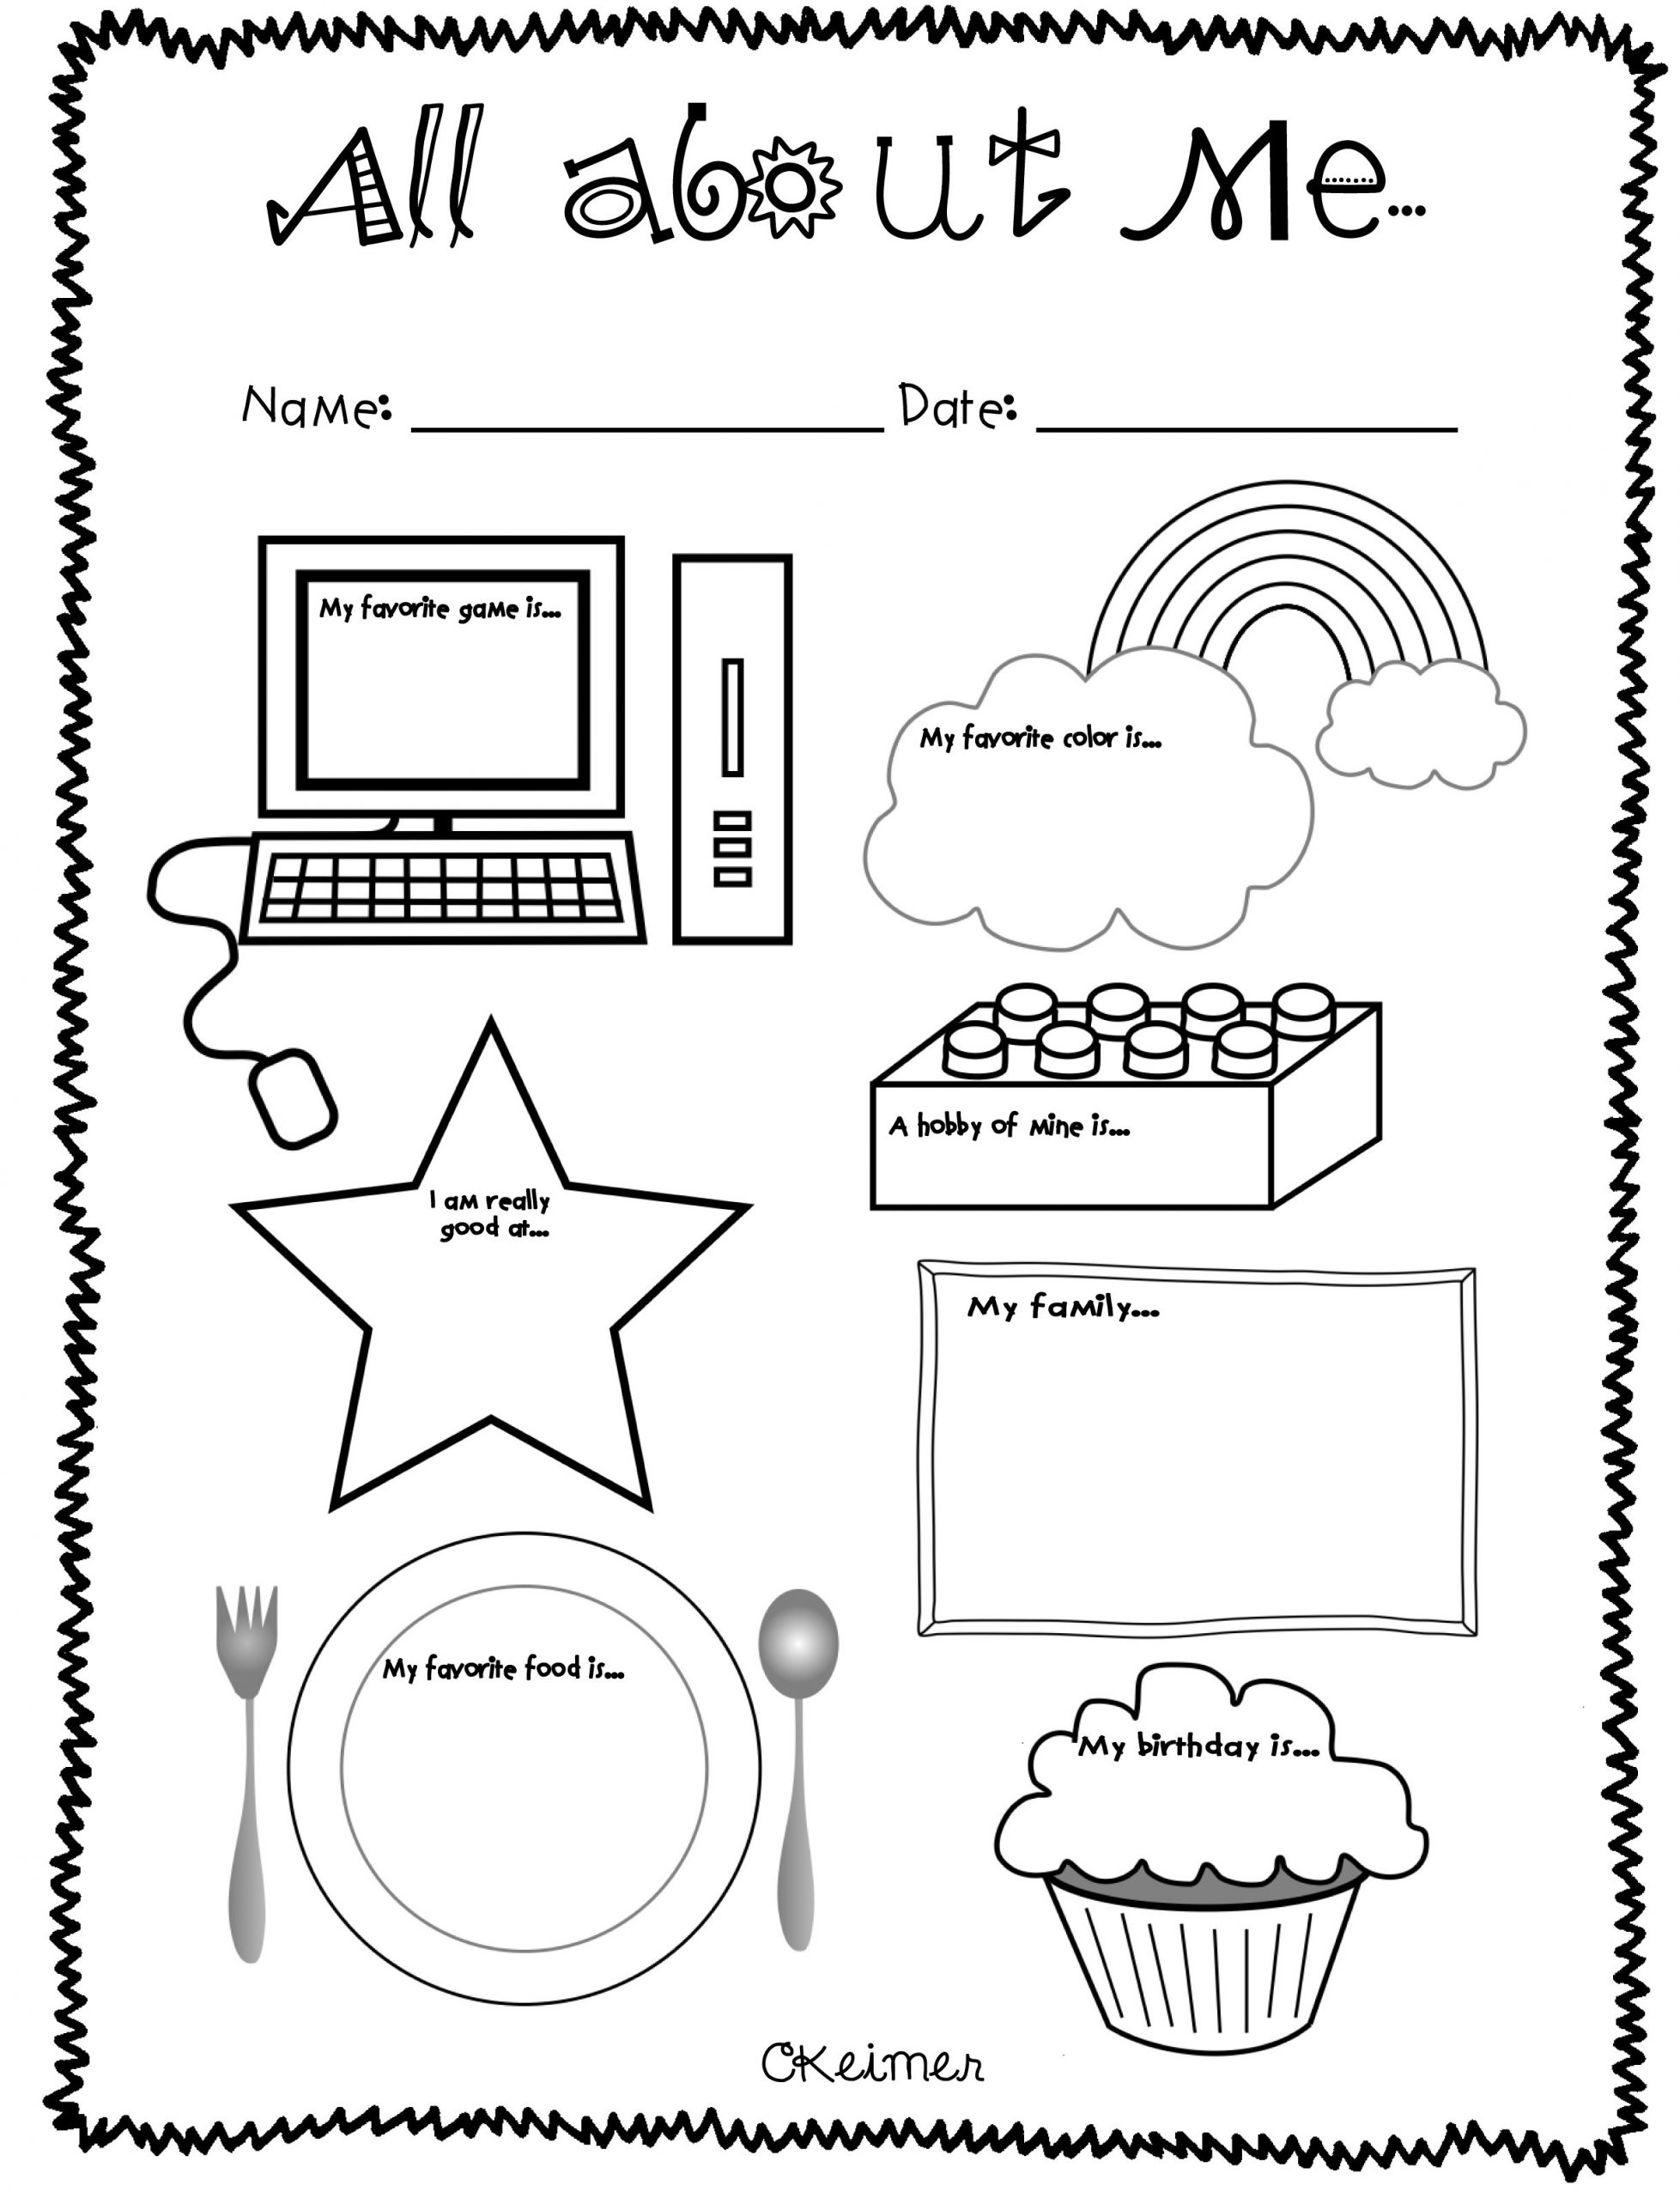 30 All About Me Worksheet Preschool